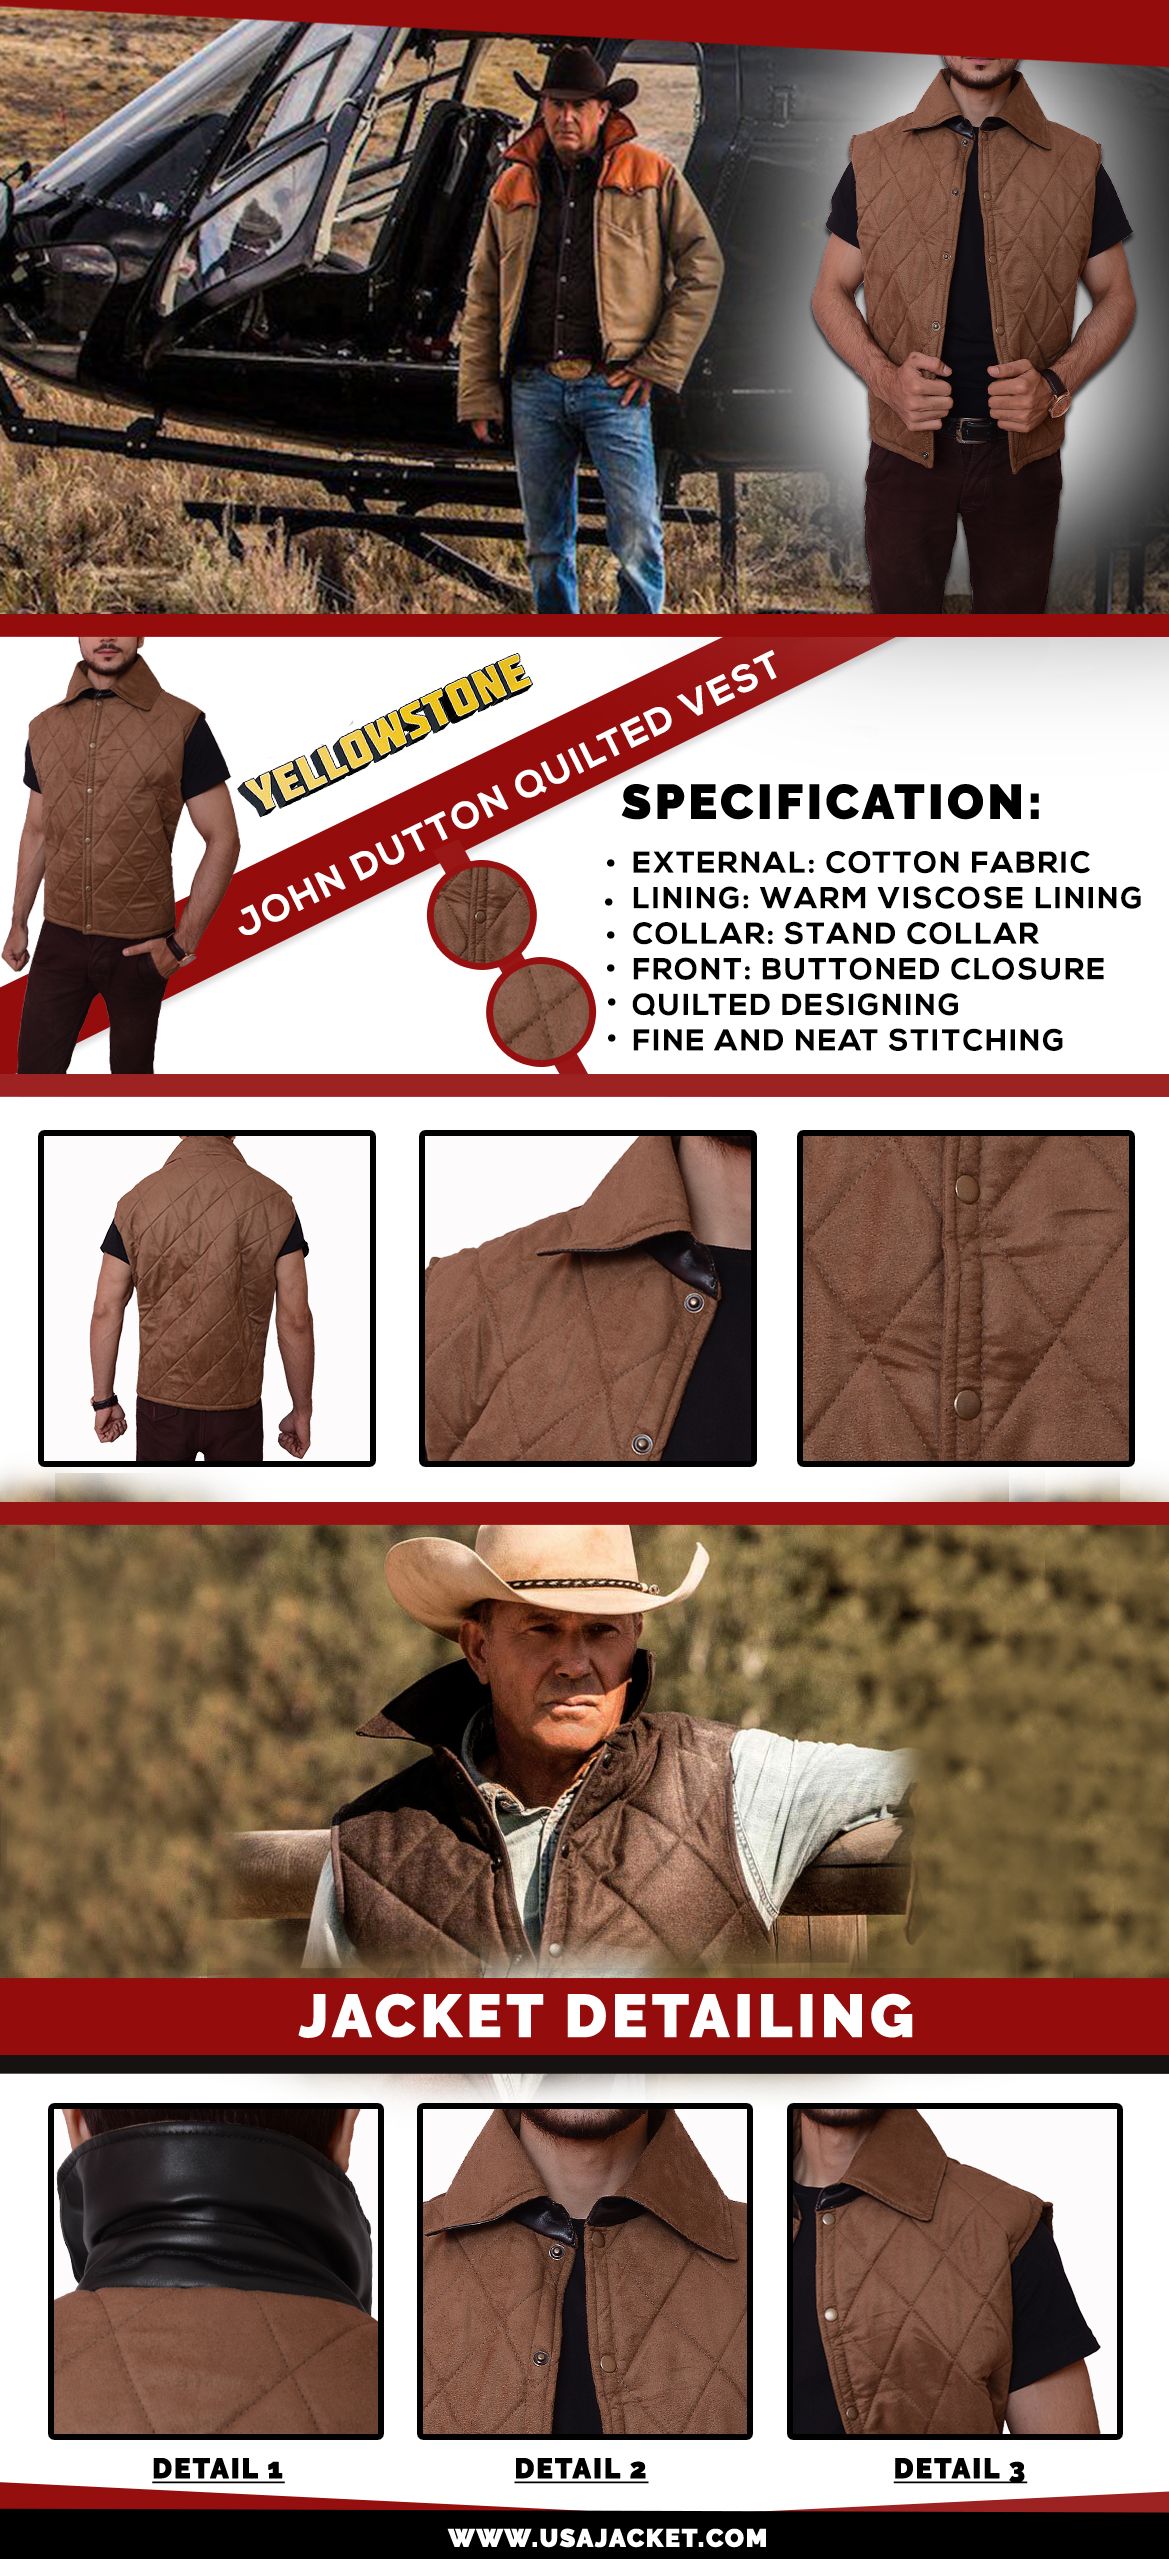 Yellowstone John Dutton Quilted Vest Infographic